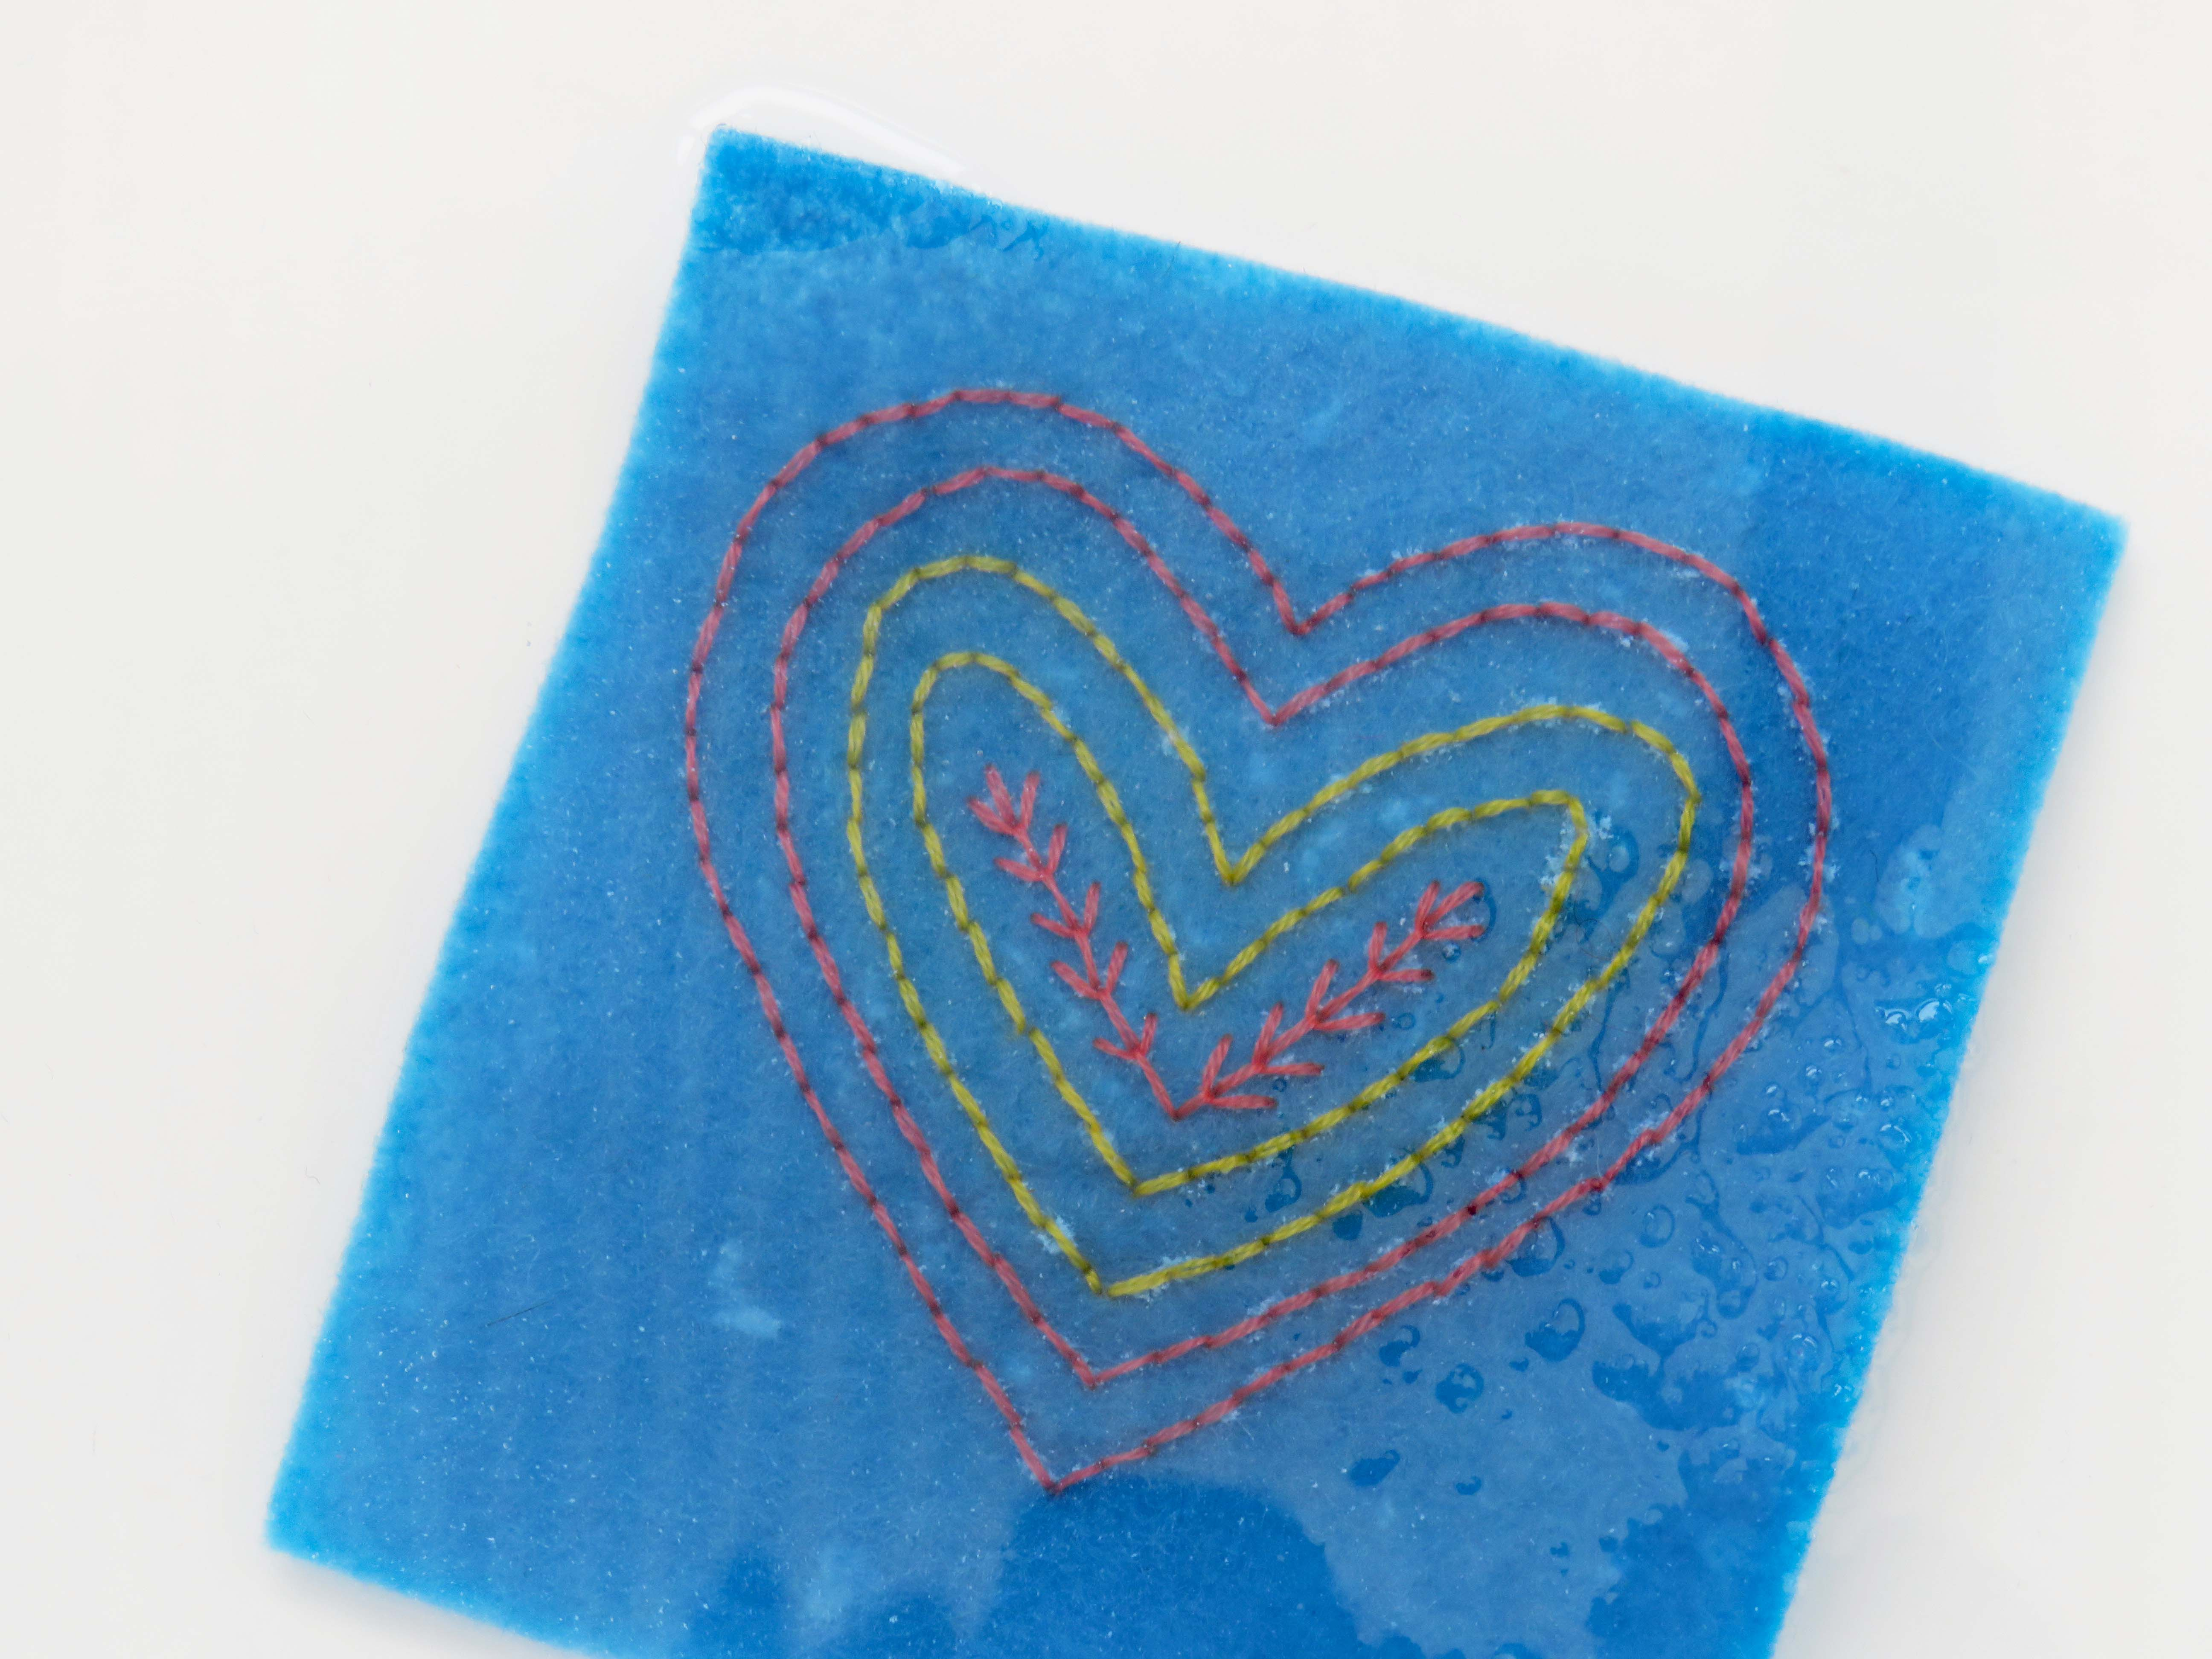 Heart decoration hand embroidery pattern by stitchdoodles